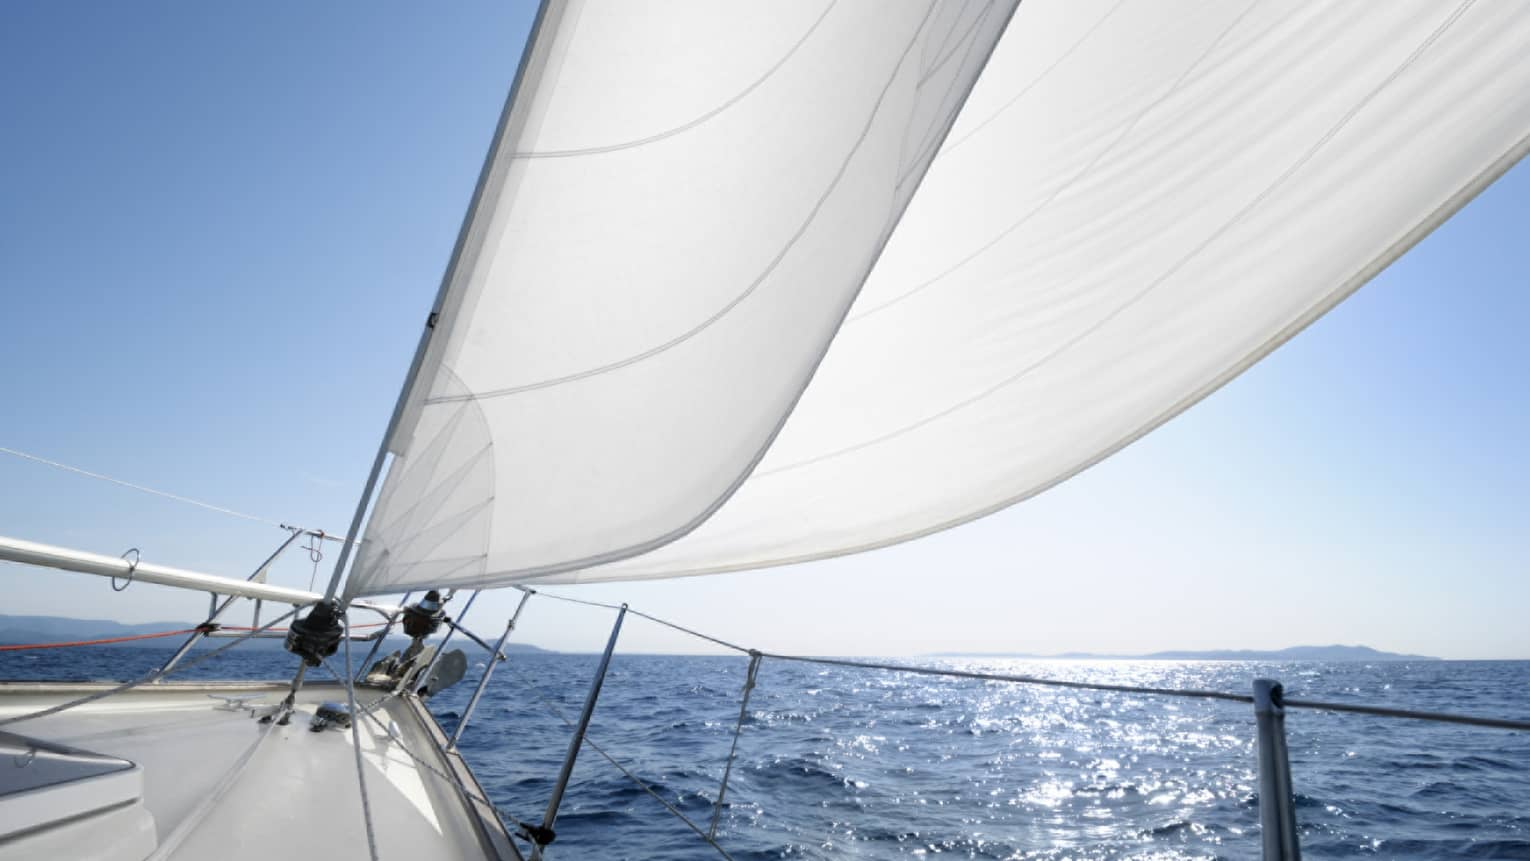 Close-up of white sails on yacht, blue ocean in background